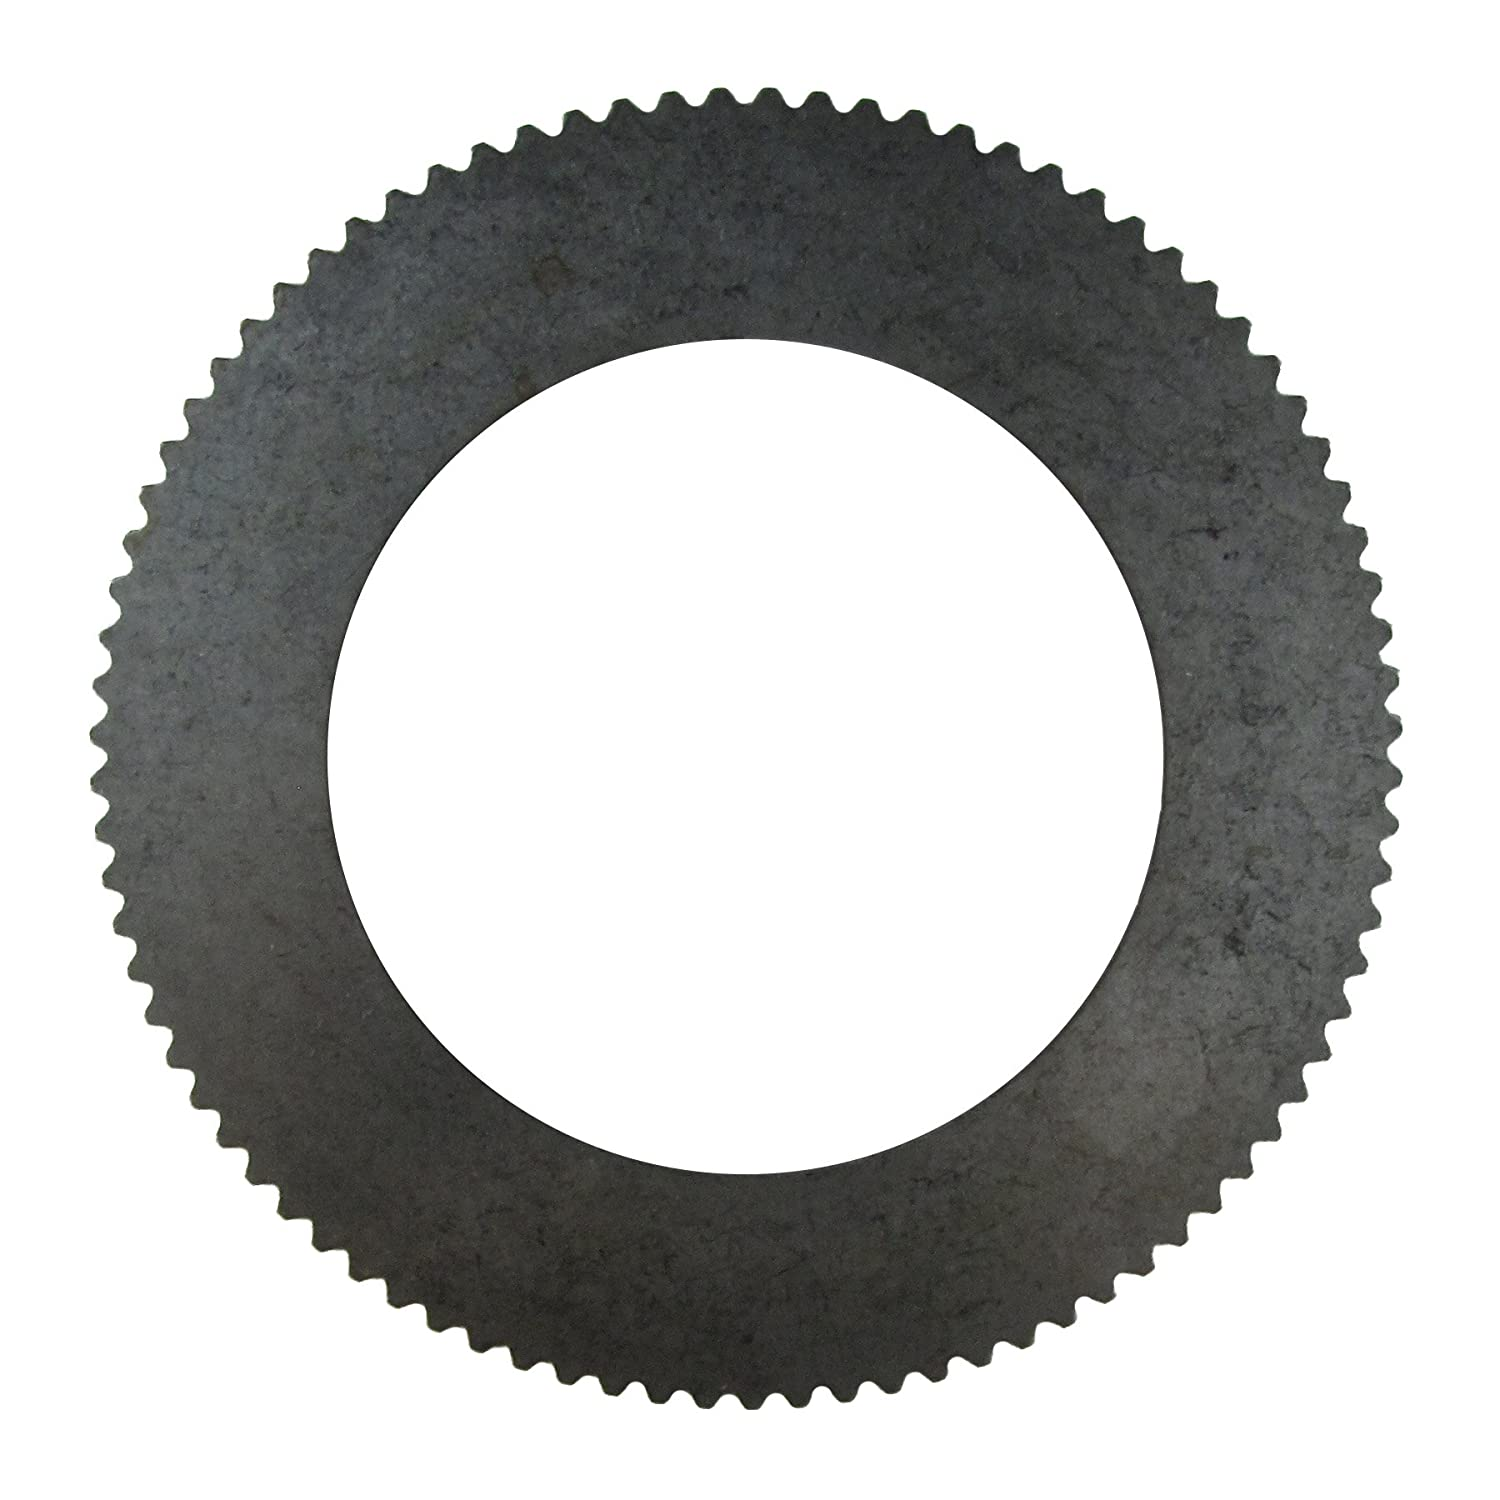 Steel Clutch Komatsu 381-922549-1 Replaced Alto 306713 # Large discharge Ranking TOP12 sale by